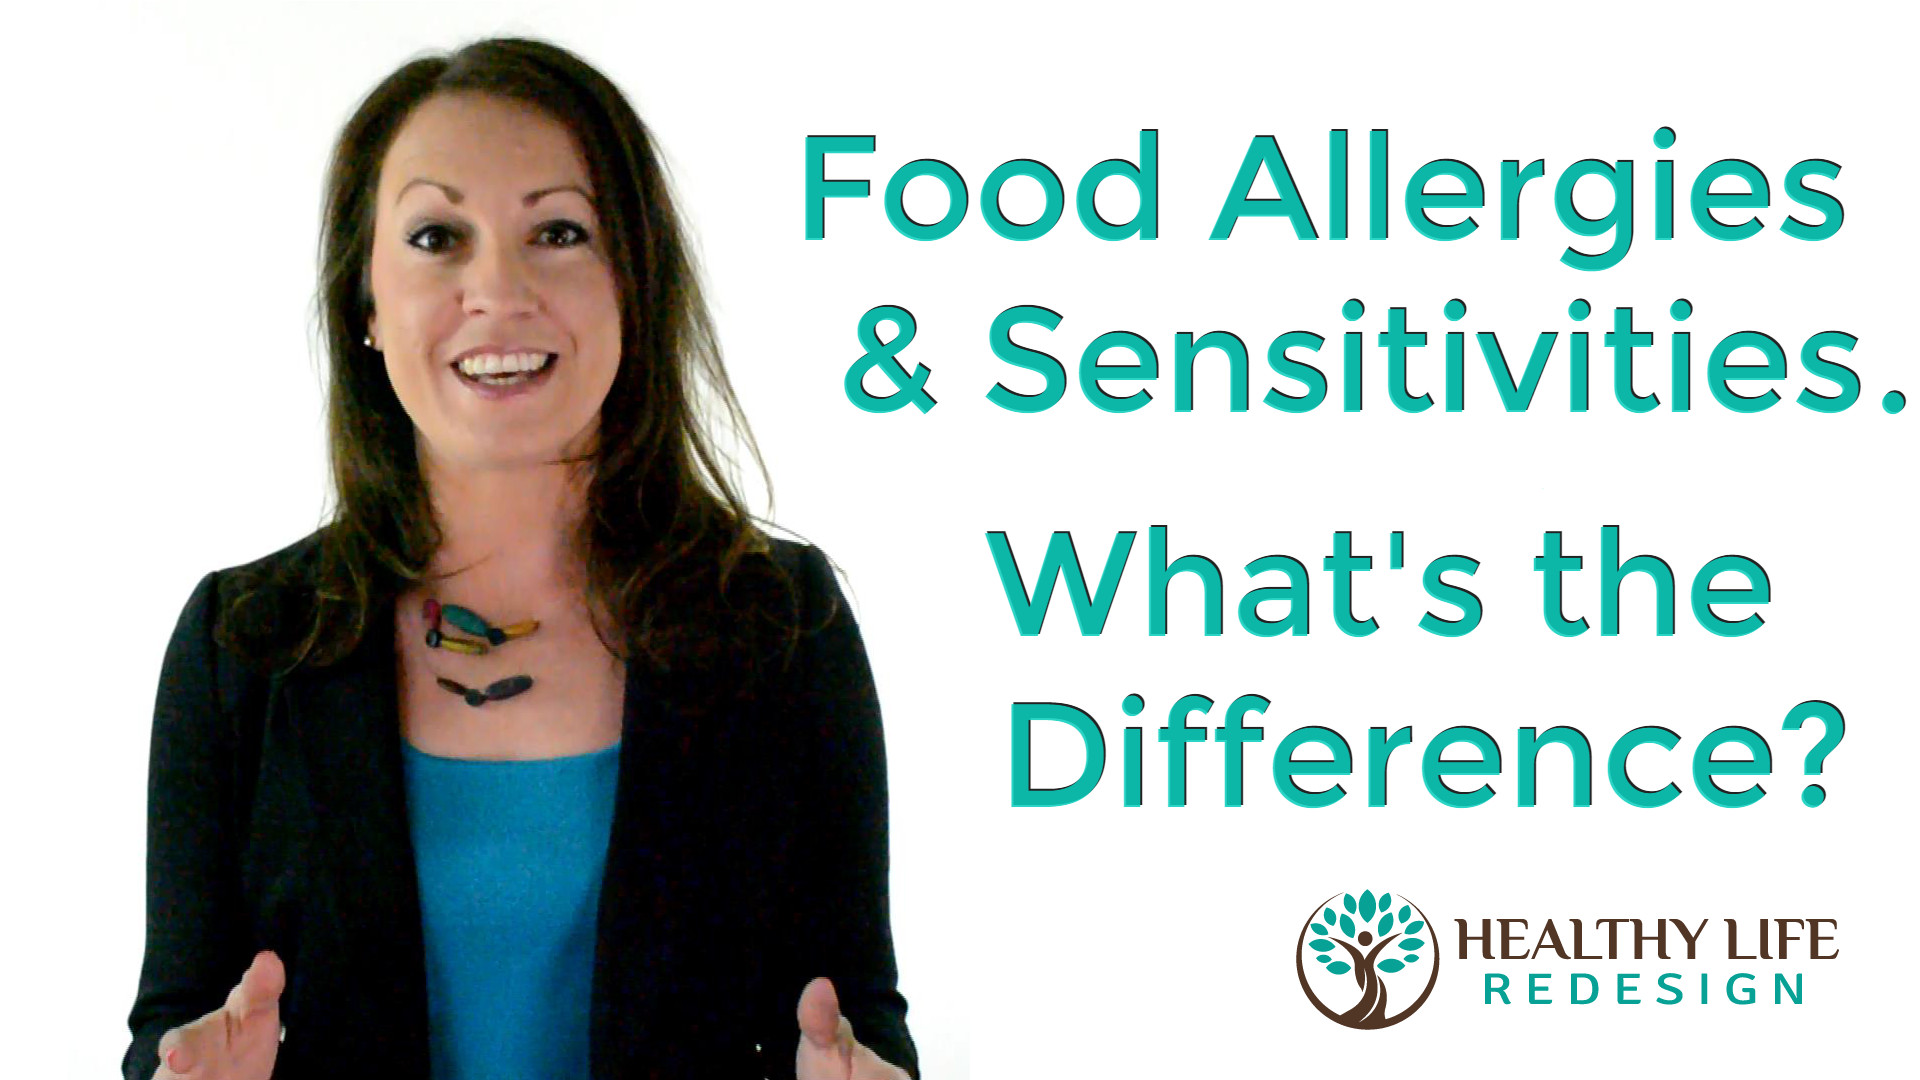 What's the difference between food allergies and sensitivities